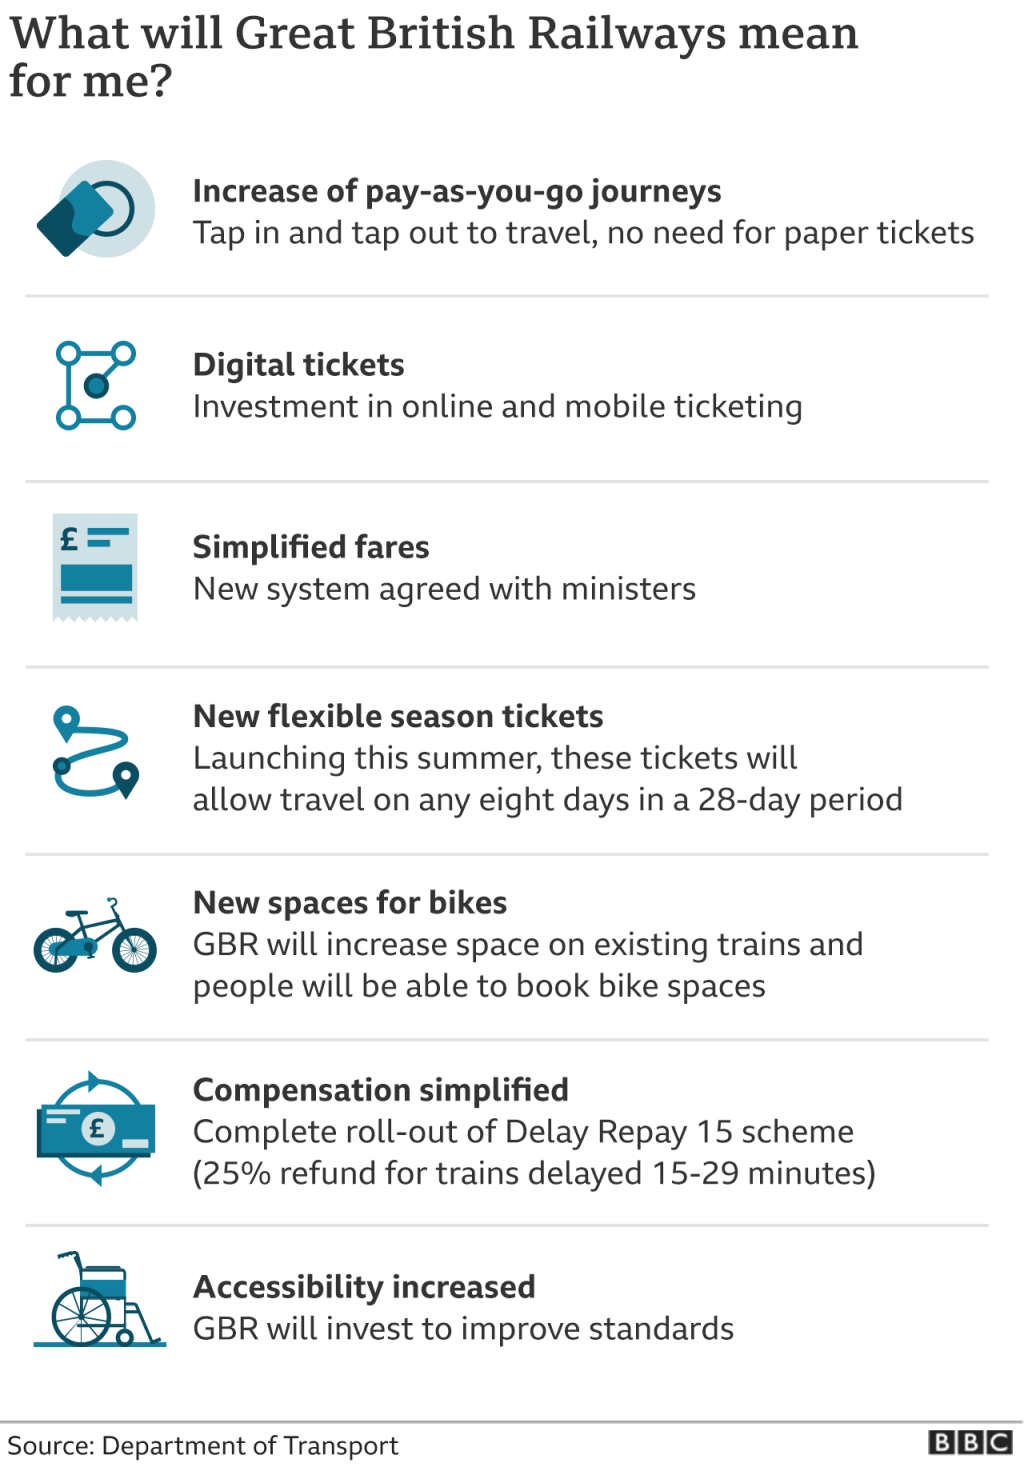 Graphic showing what Great British Railways will change for passengers